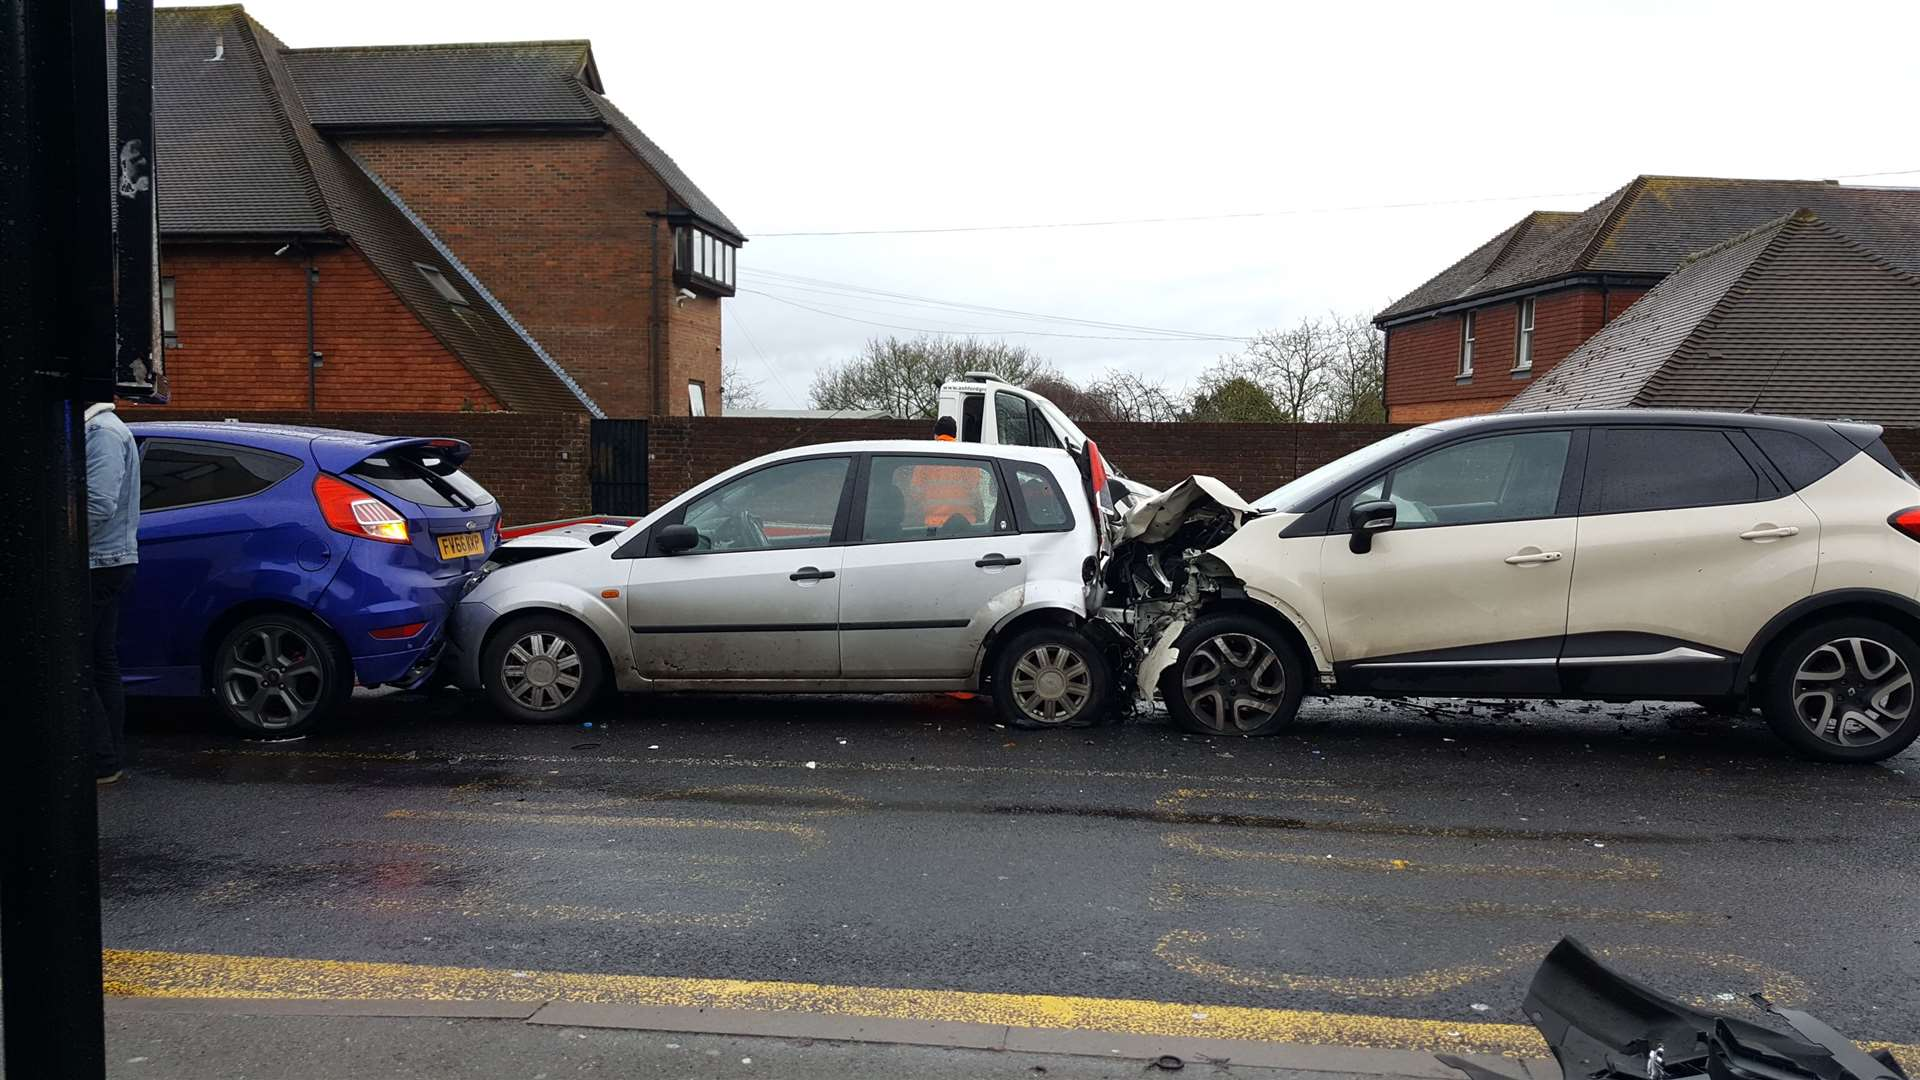 Two Ford Fiestas and a Renault Kaptur were involved